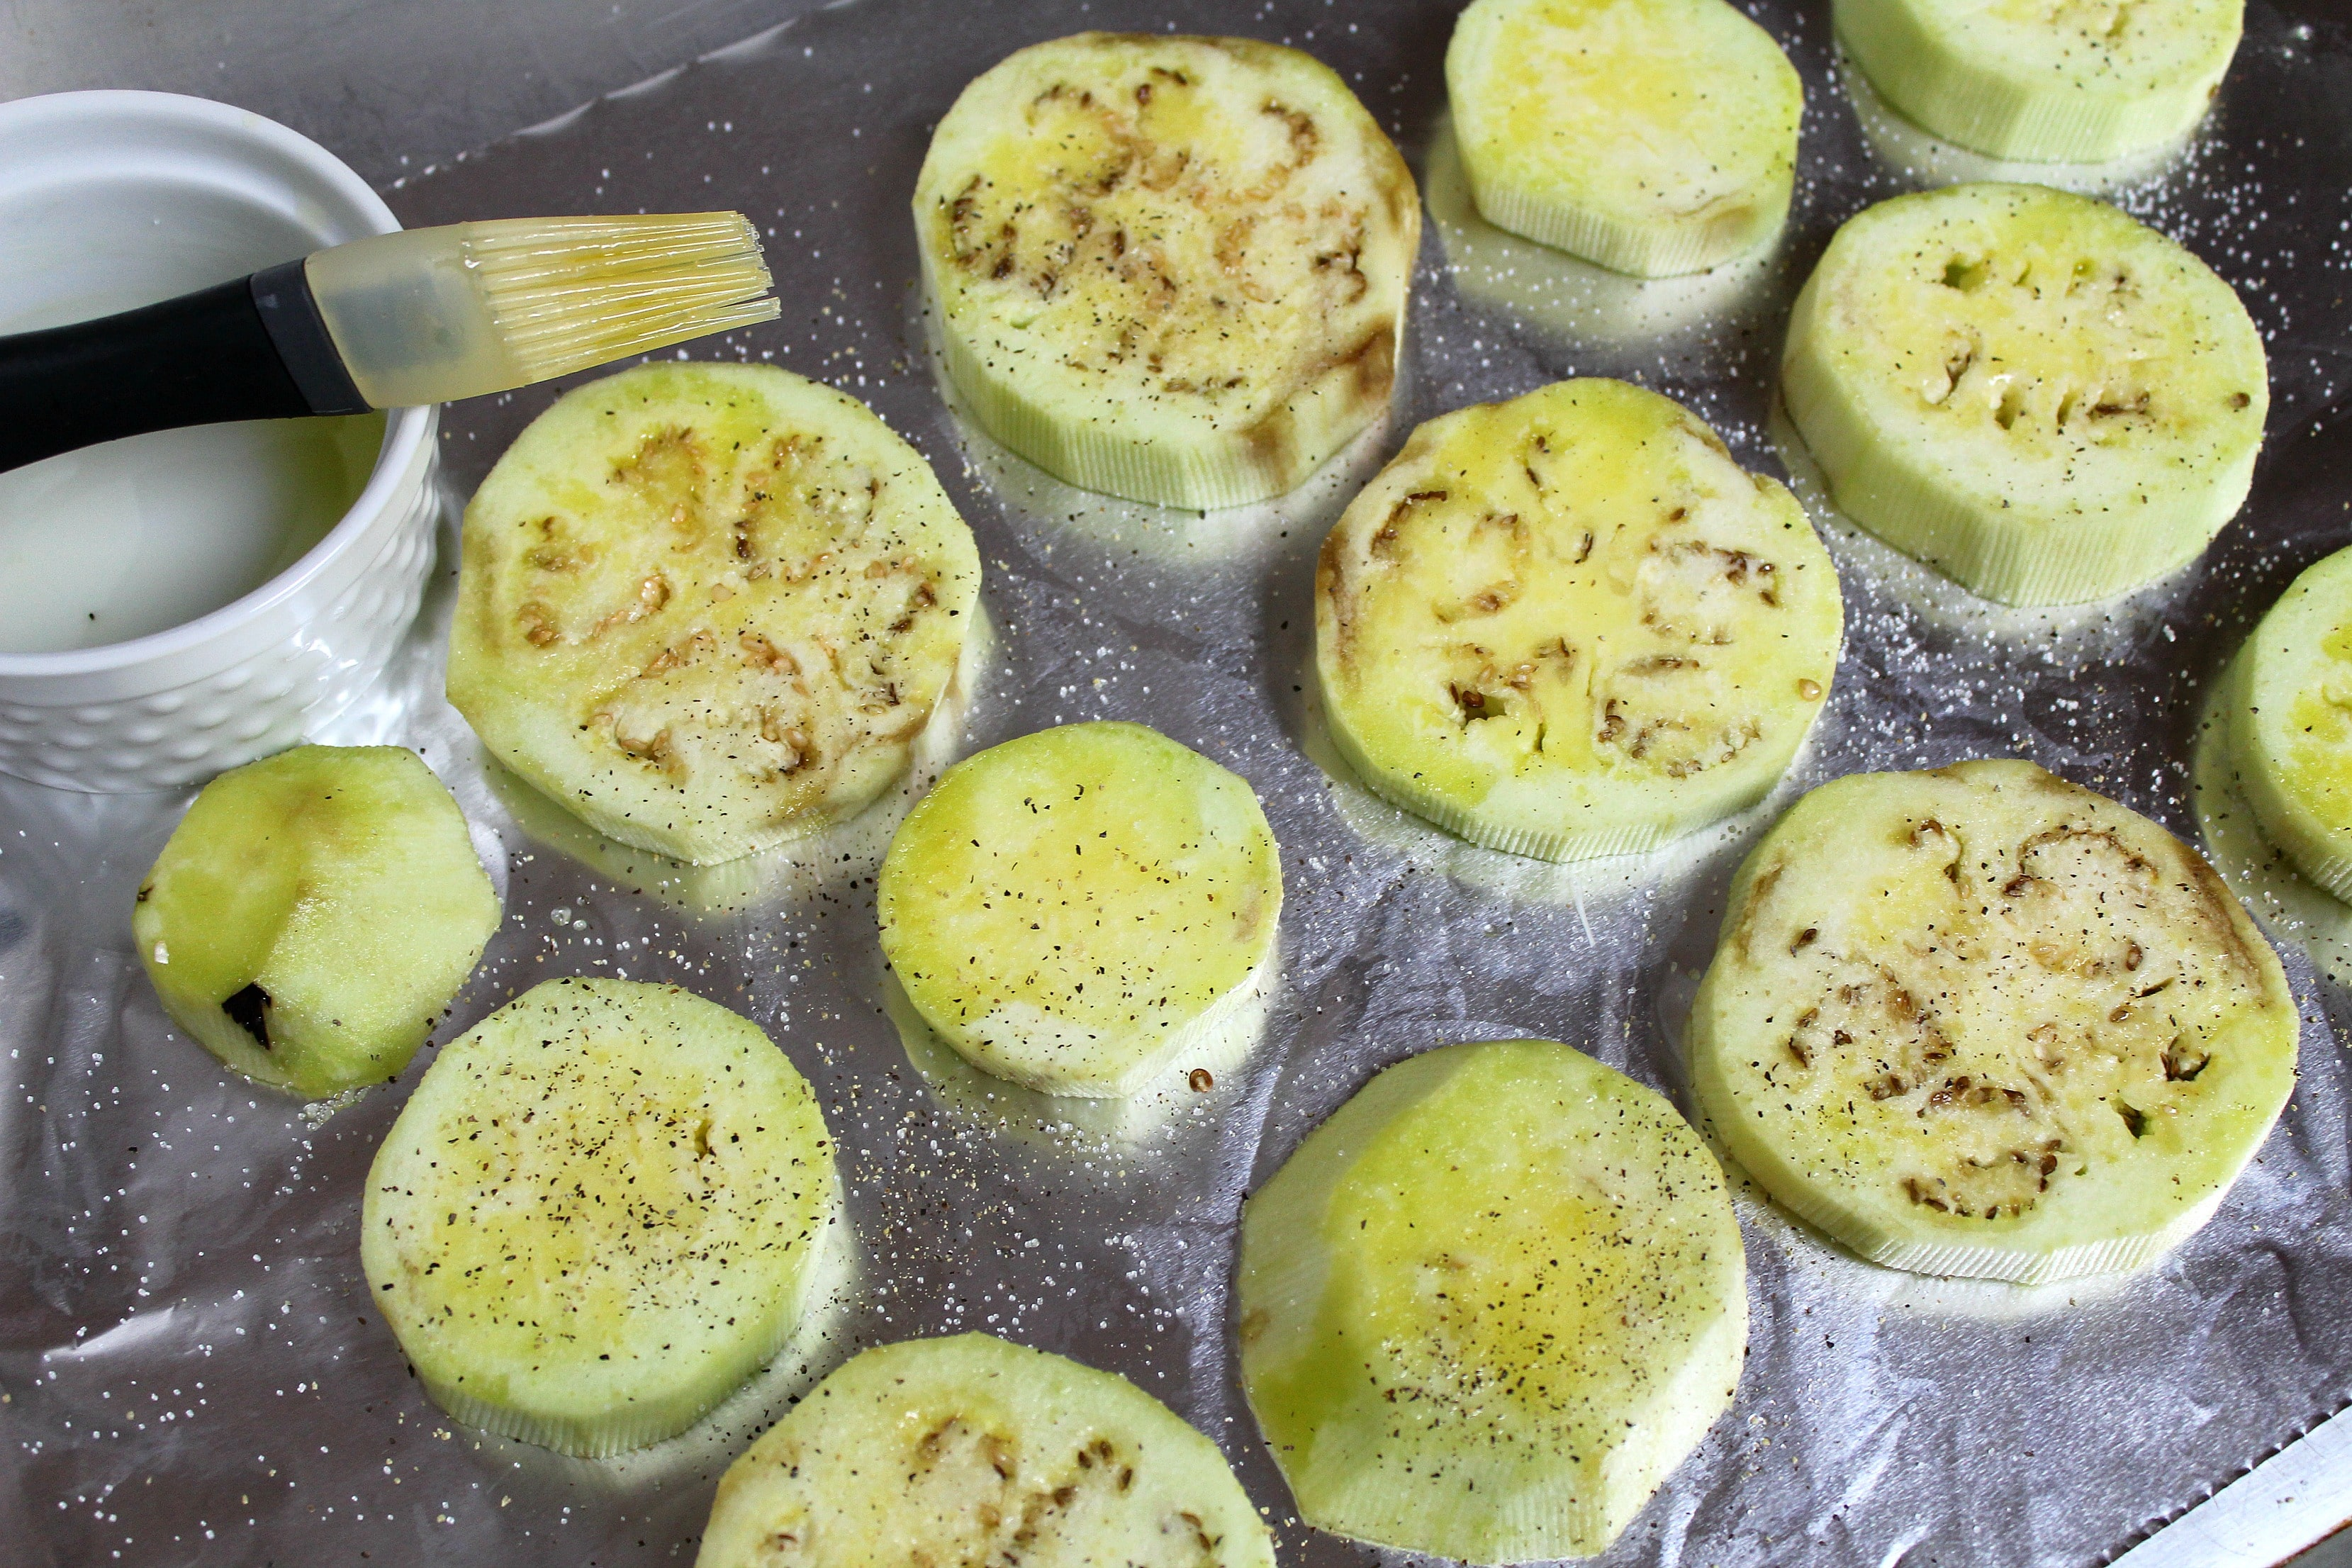 PLace eggplant slices on baking sheet. Brush with olive oil and sprinkle with salt and pepper.